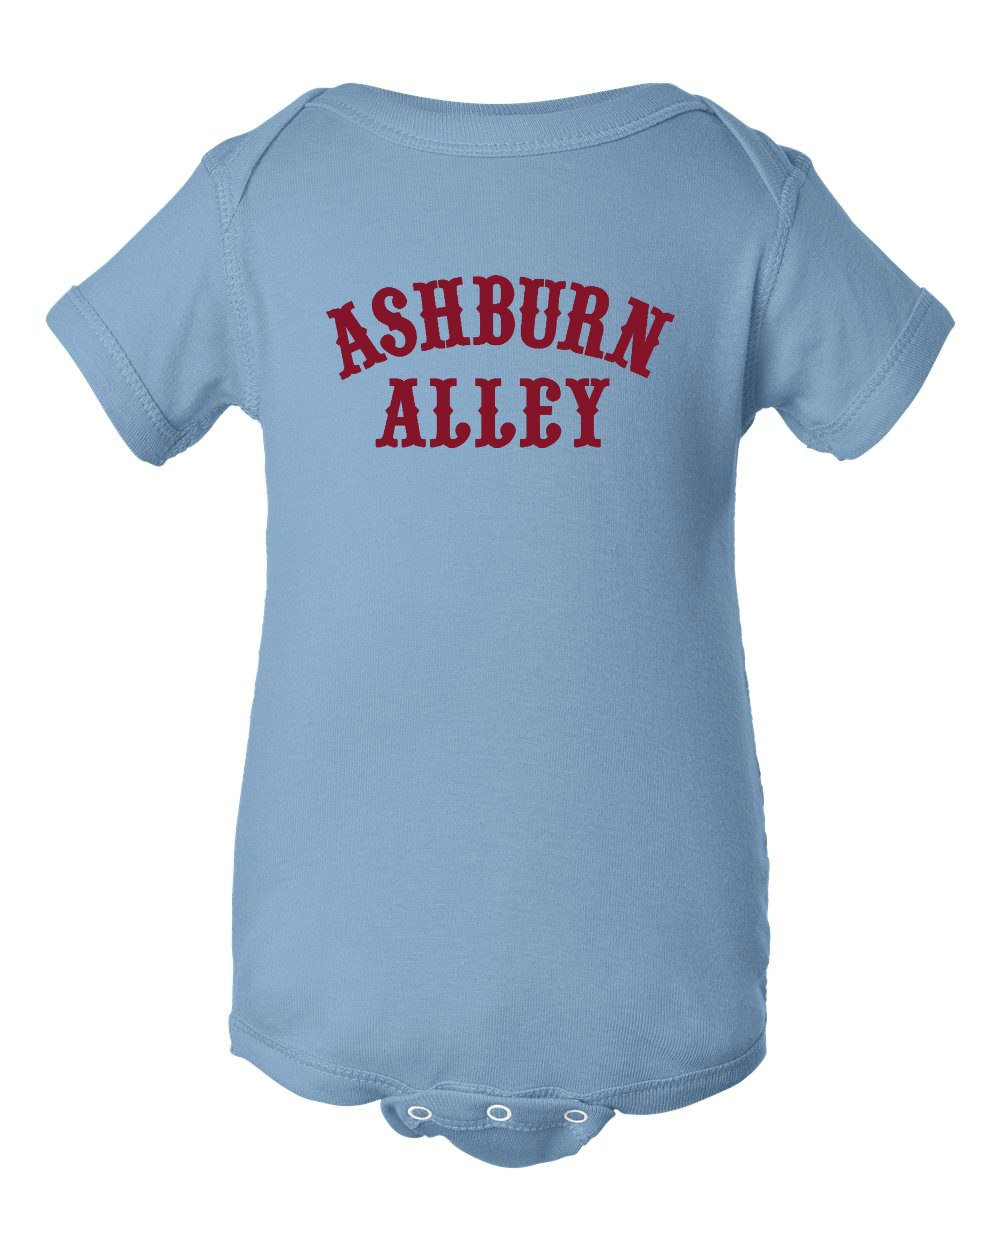 Ashburn Alley INFANT Onesie